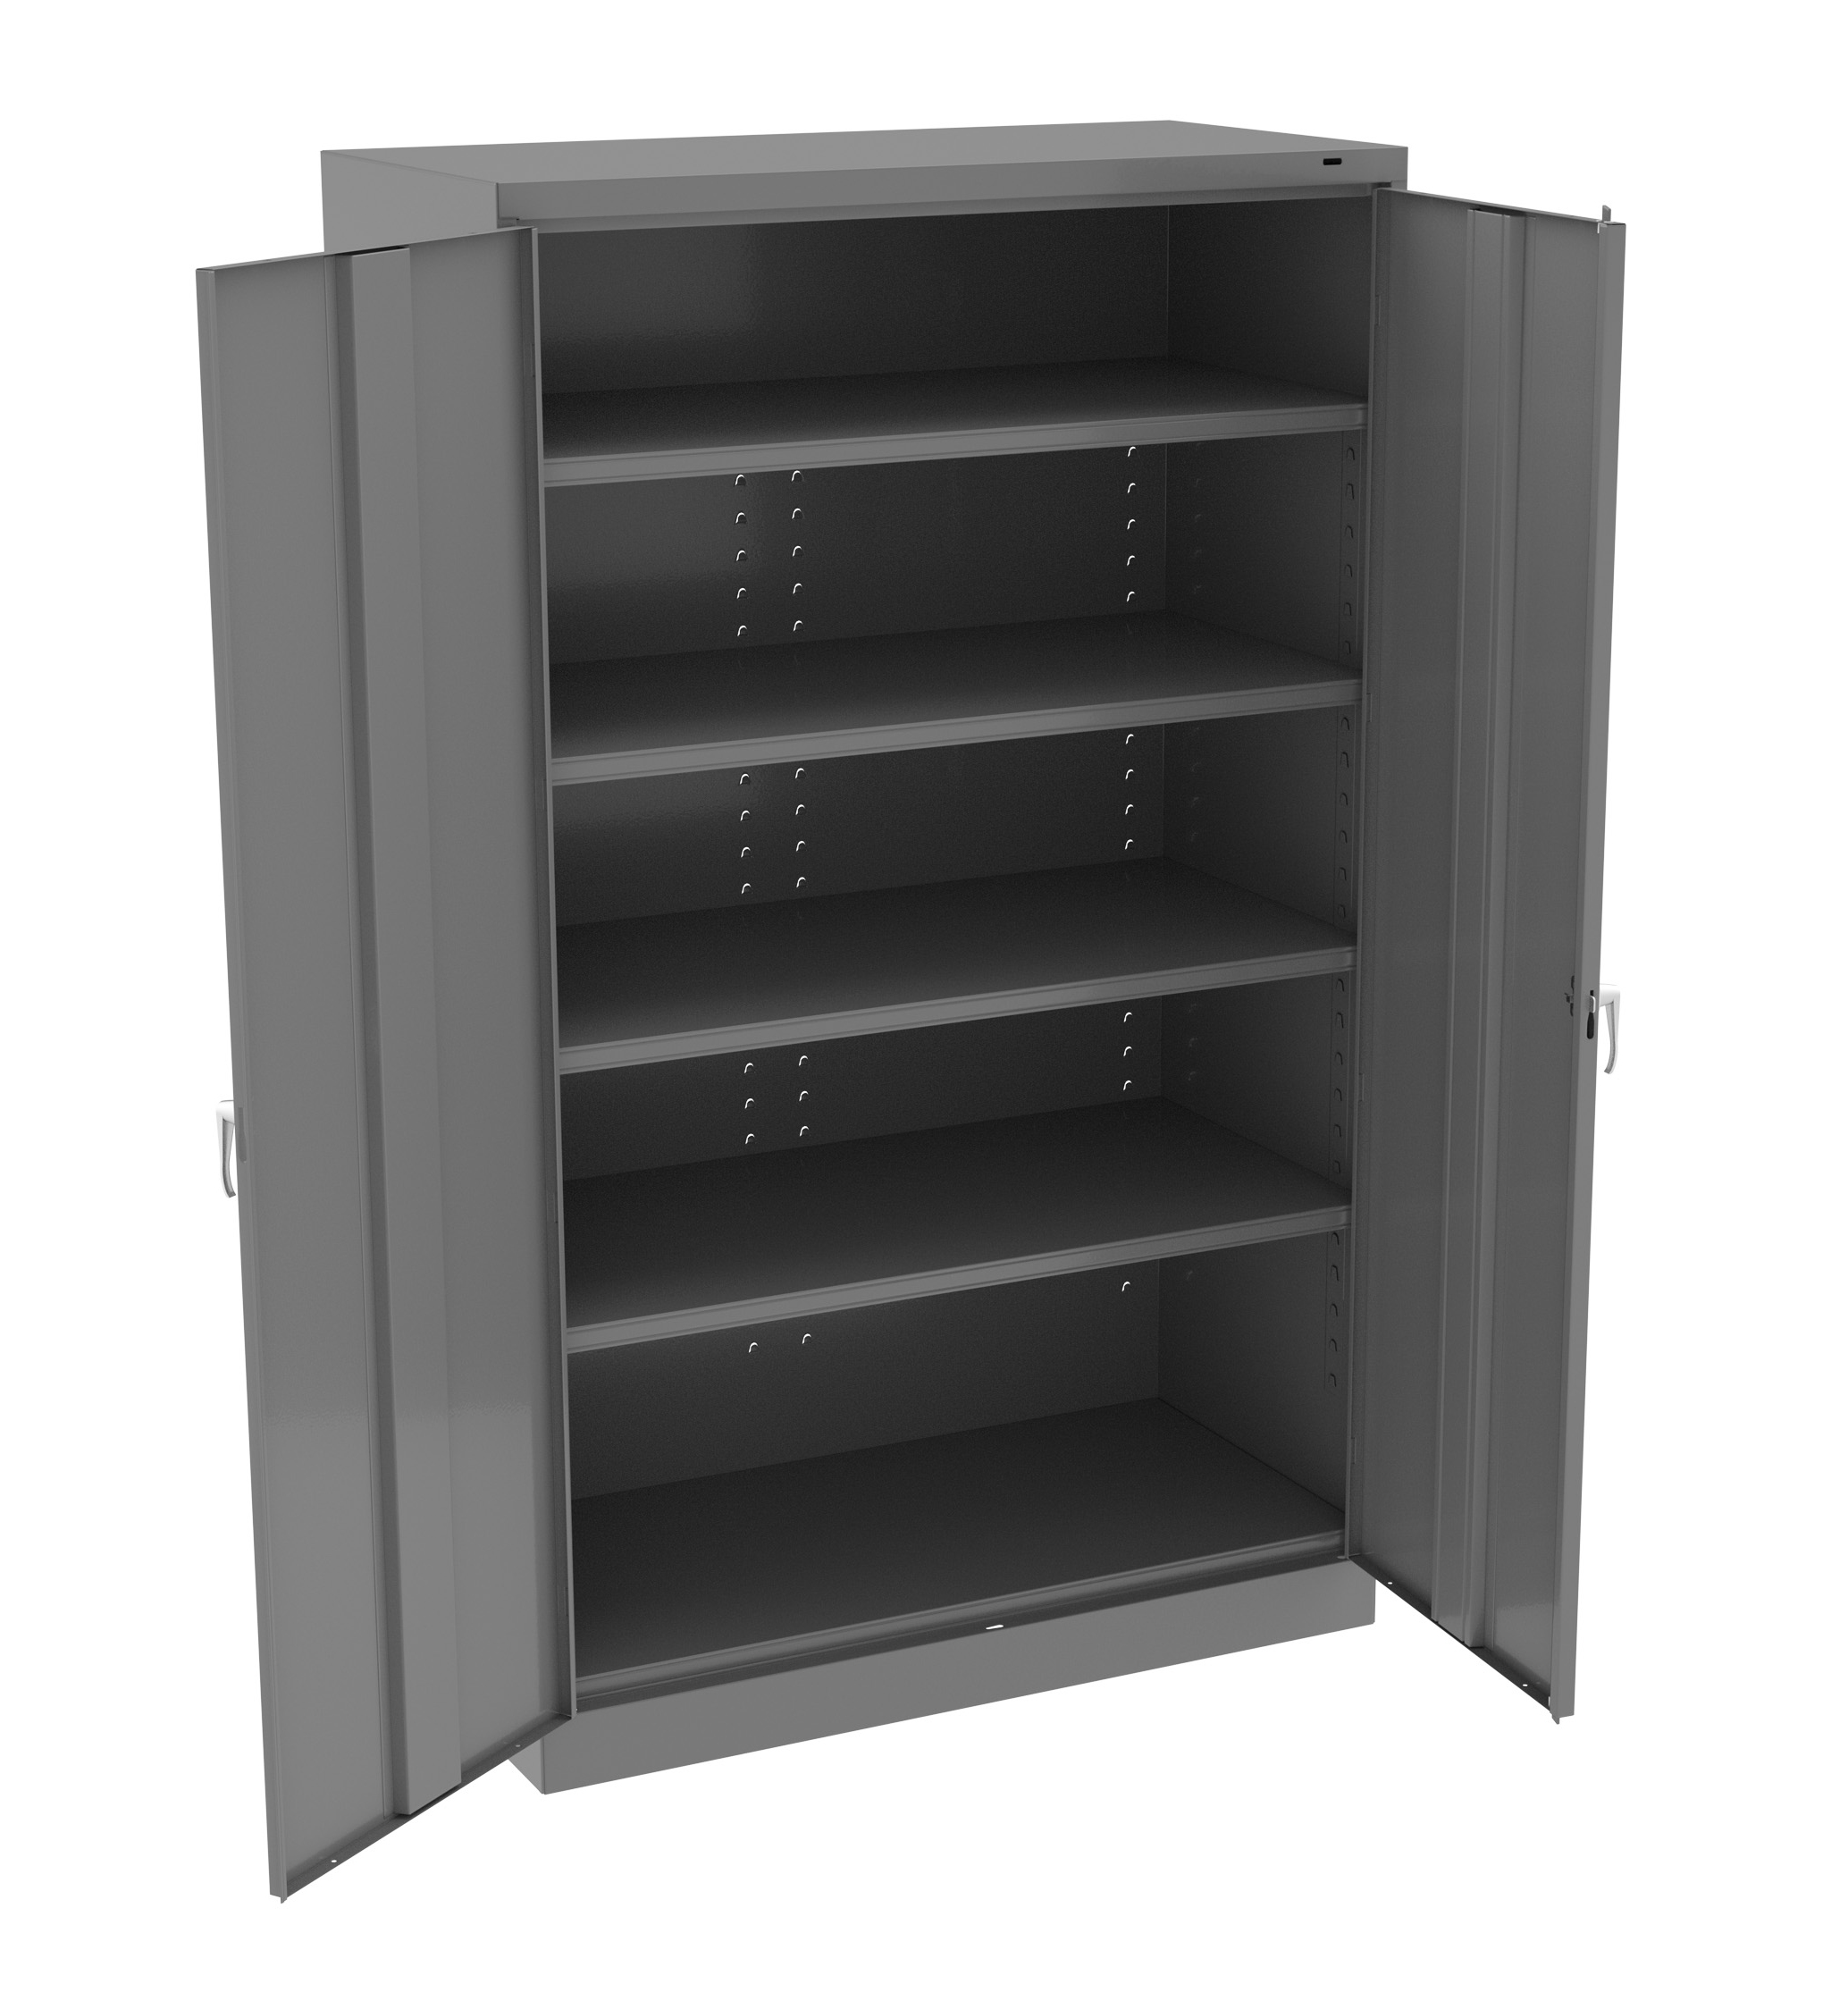 Tennsco - Storage Made Easy - Jumbo Storage Cabinet (Assembled)